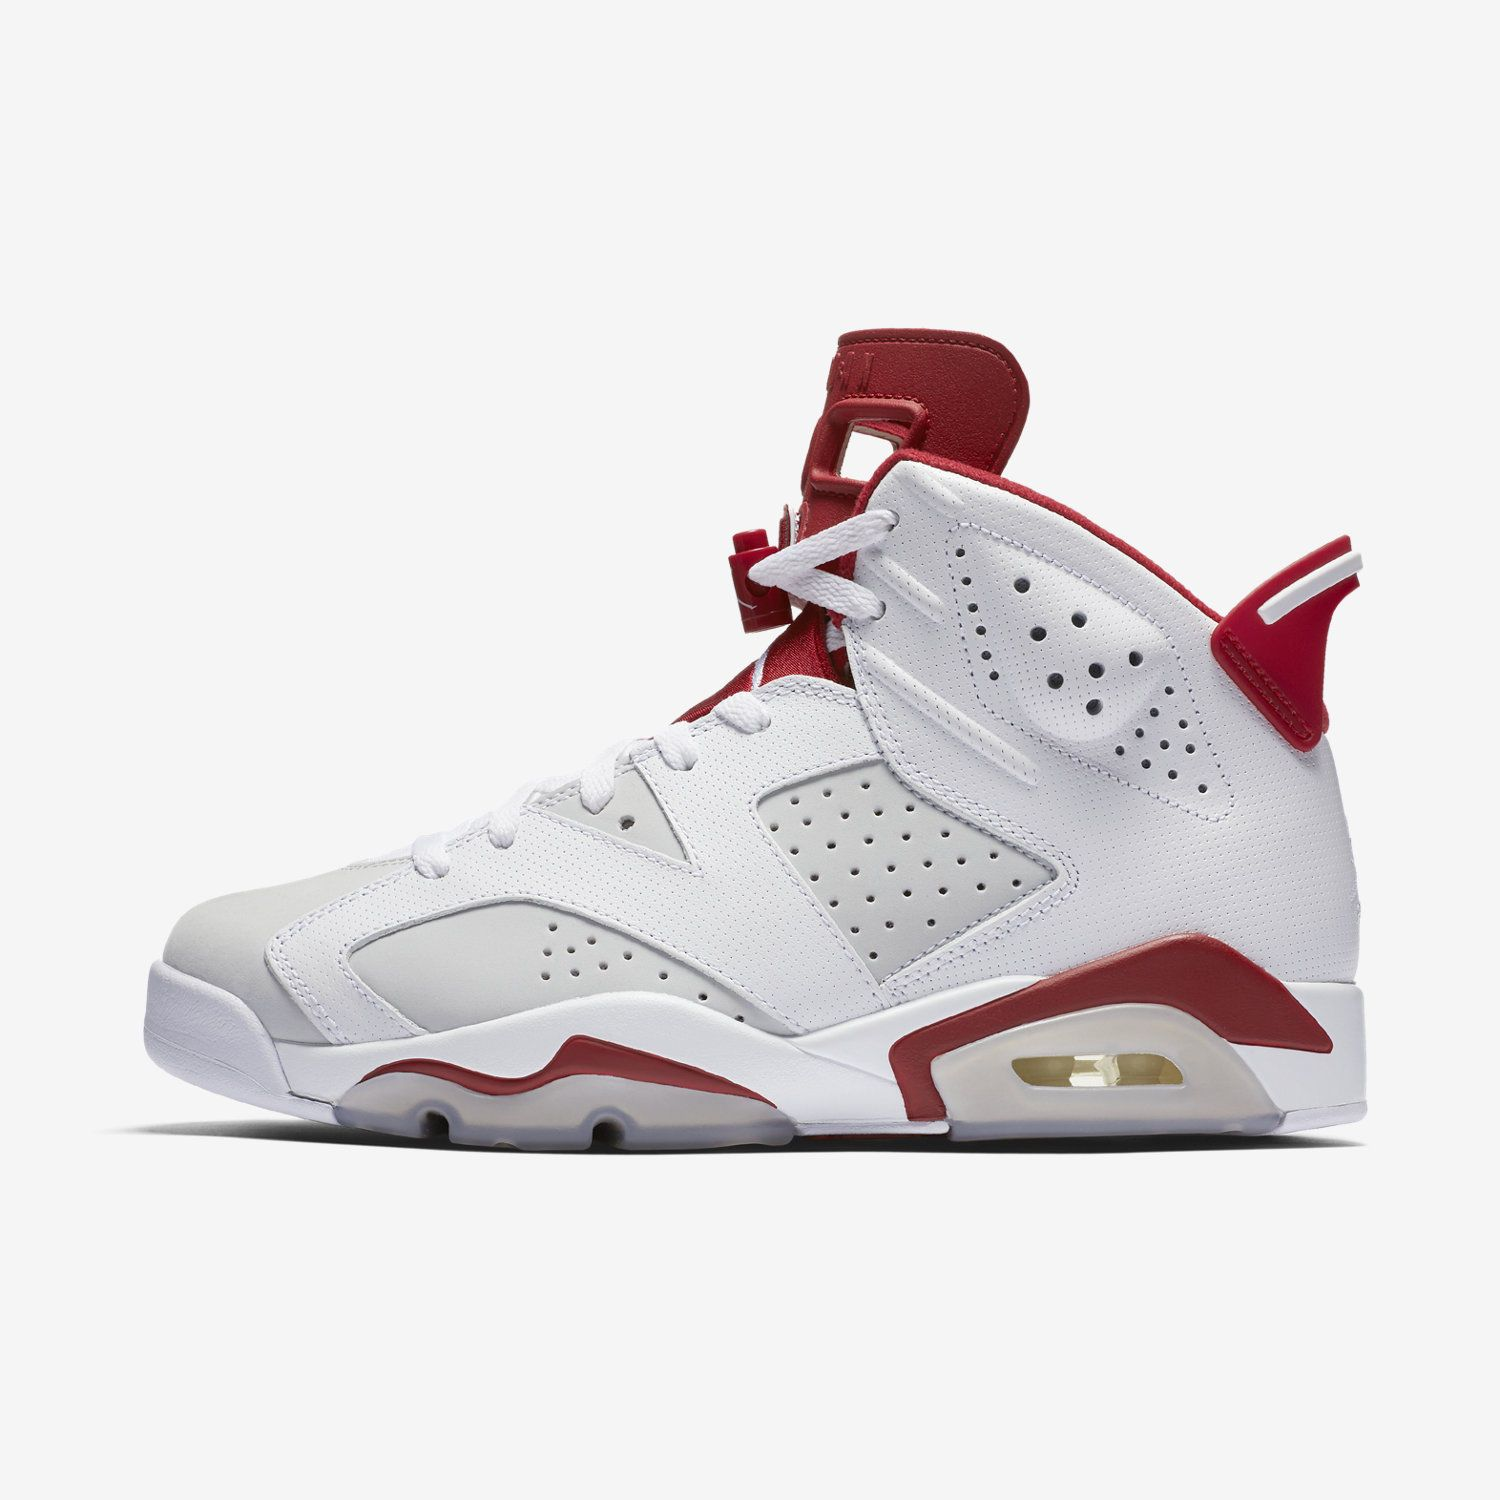 411a1b32986a Nike Air Jordan 6 Retro [384664-113] Basketball Alternate Hare 1991  White/Red